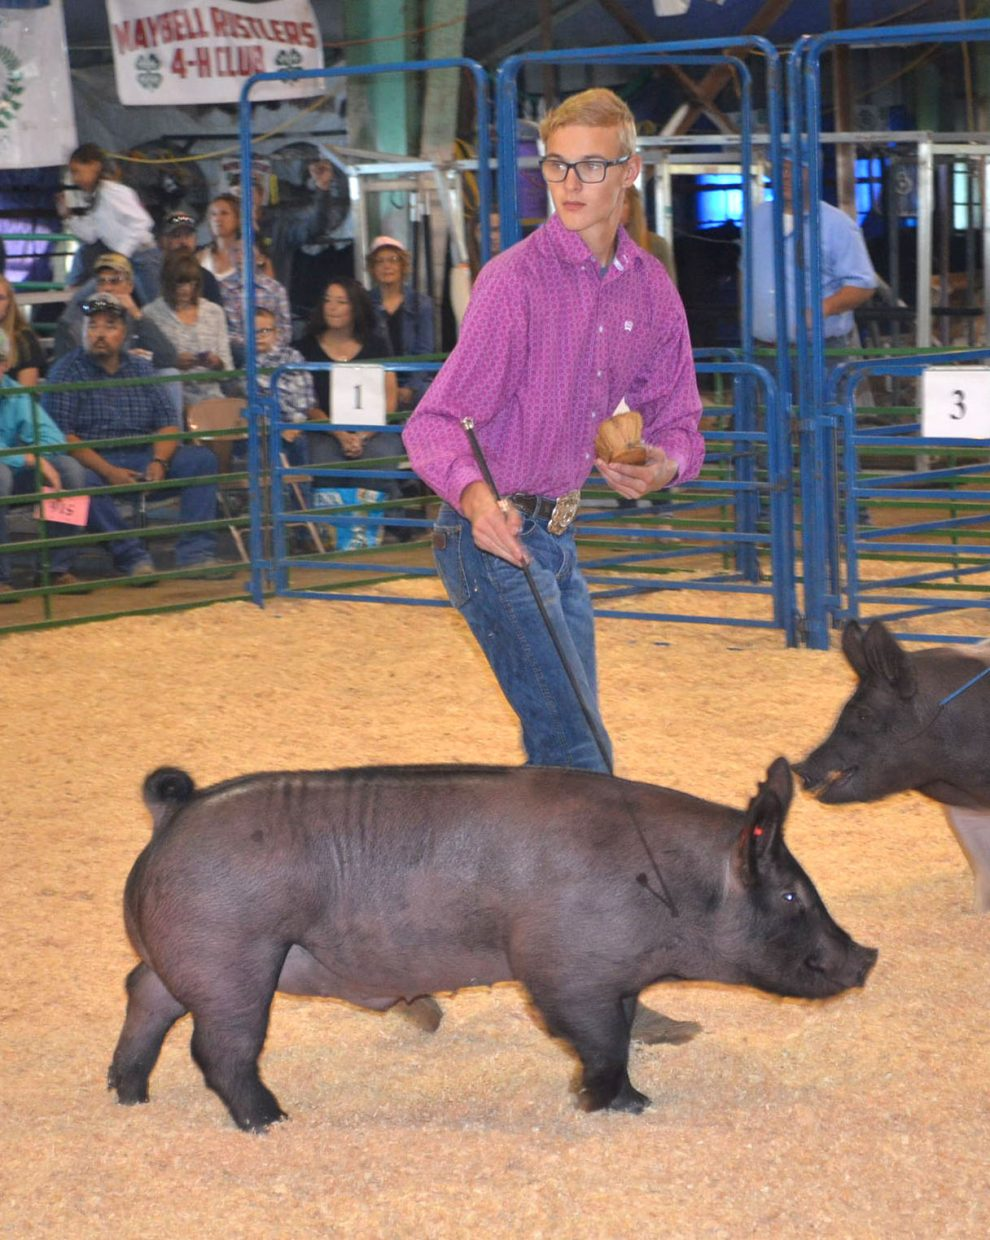 Kameron Baker guides his pig around the arena during the senior showmanship division of the swine show at the Moffat County Fair on Friday.